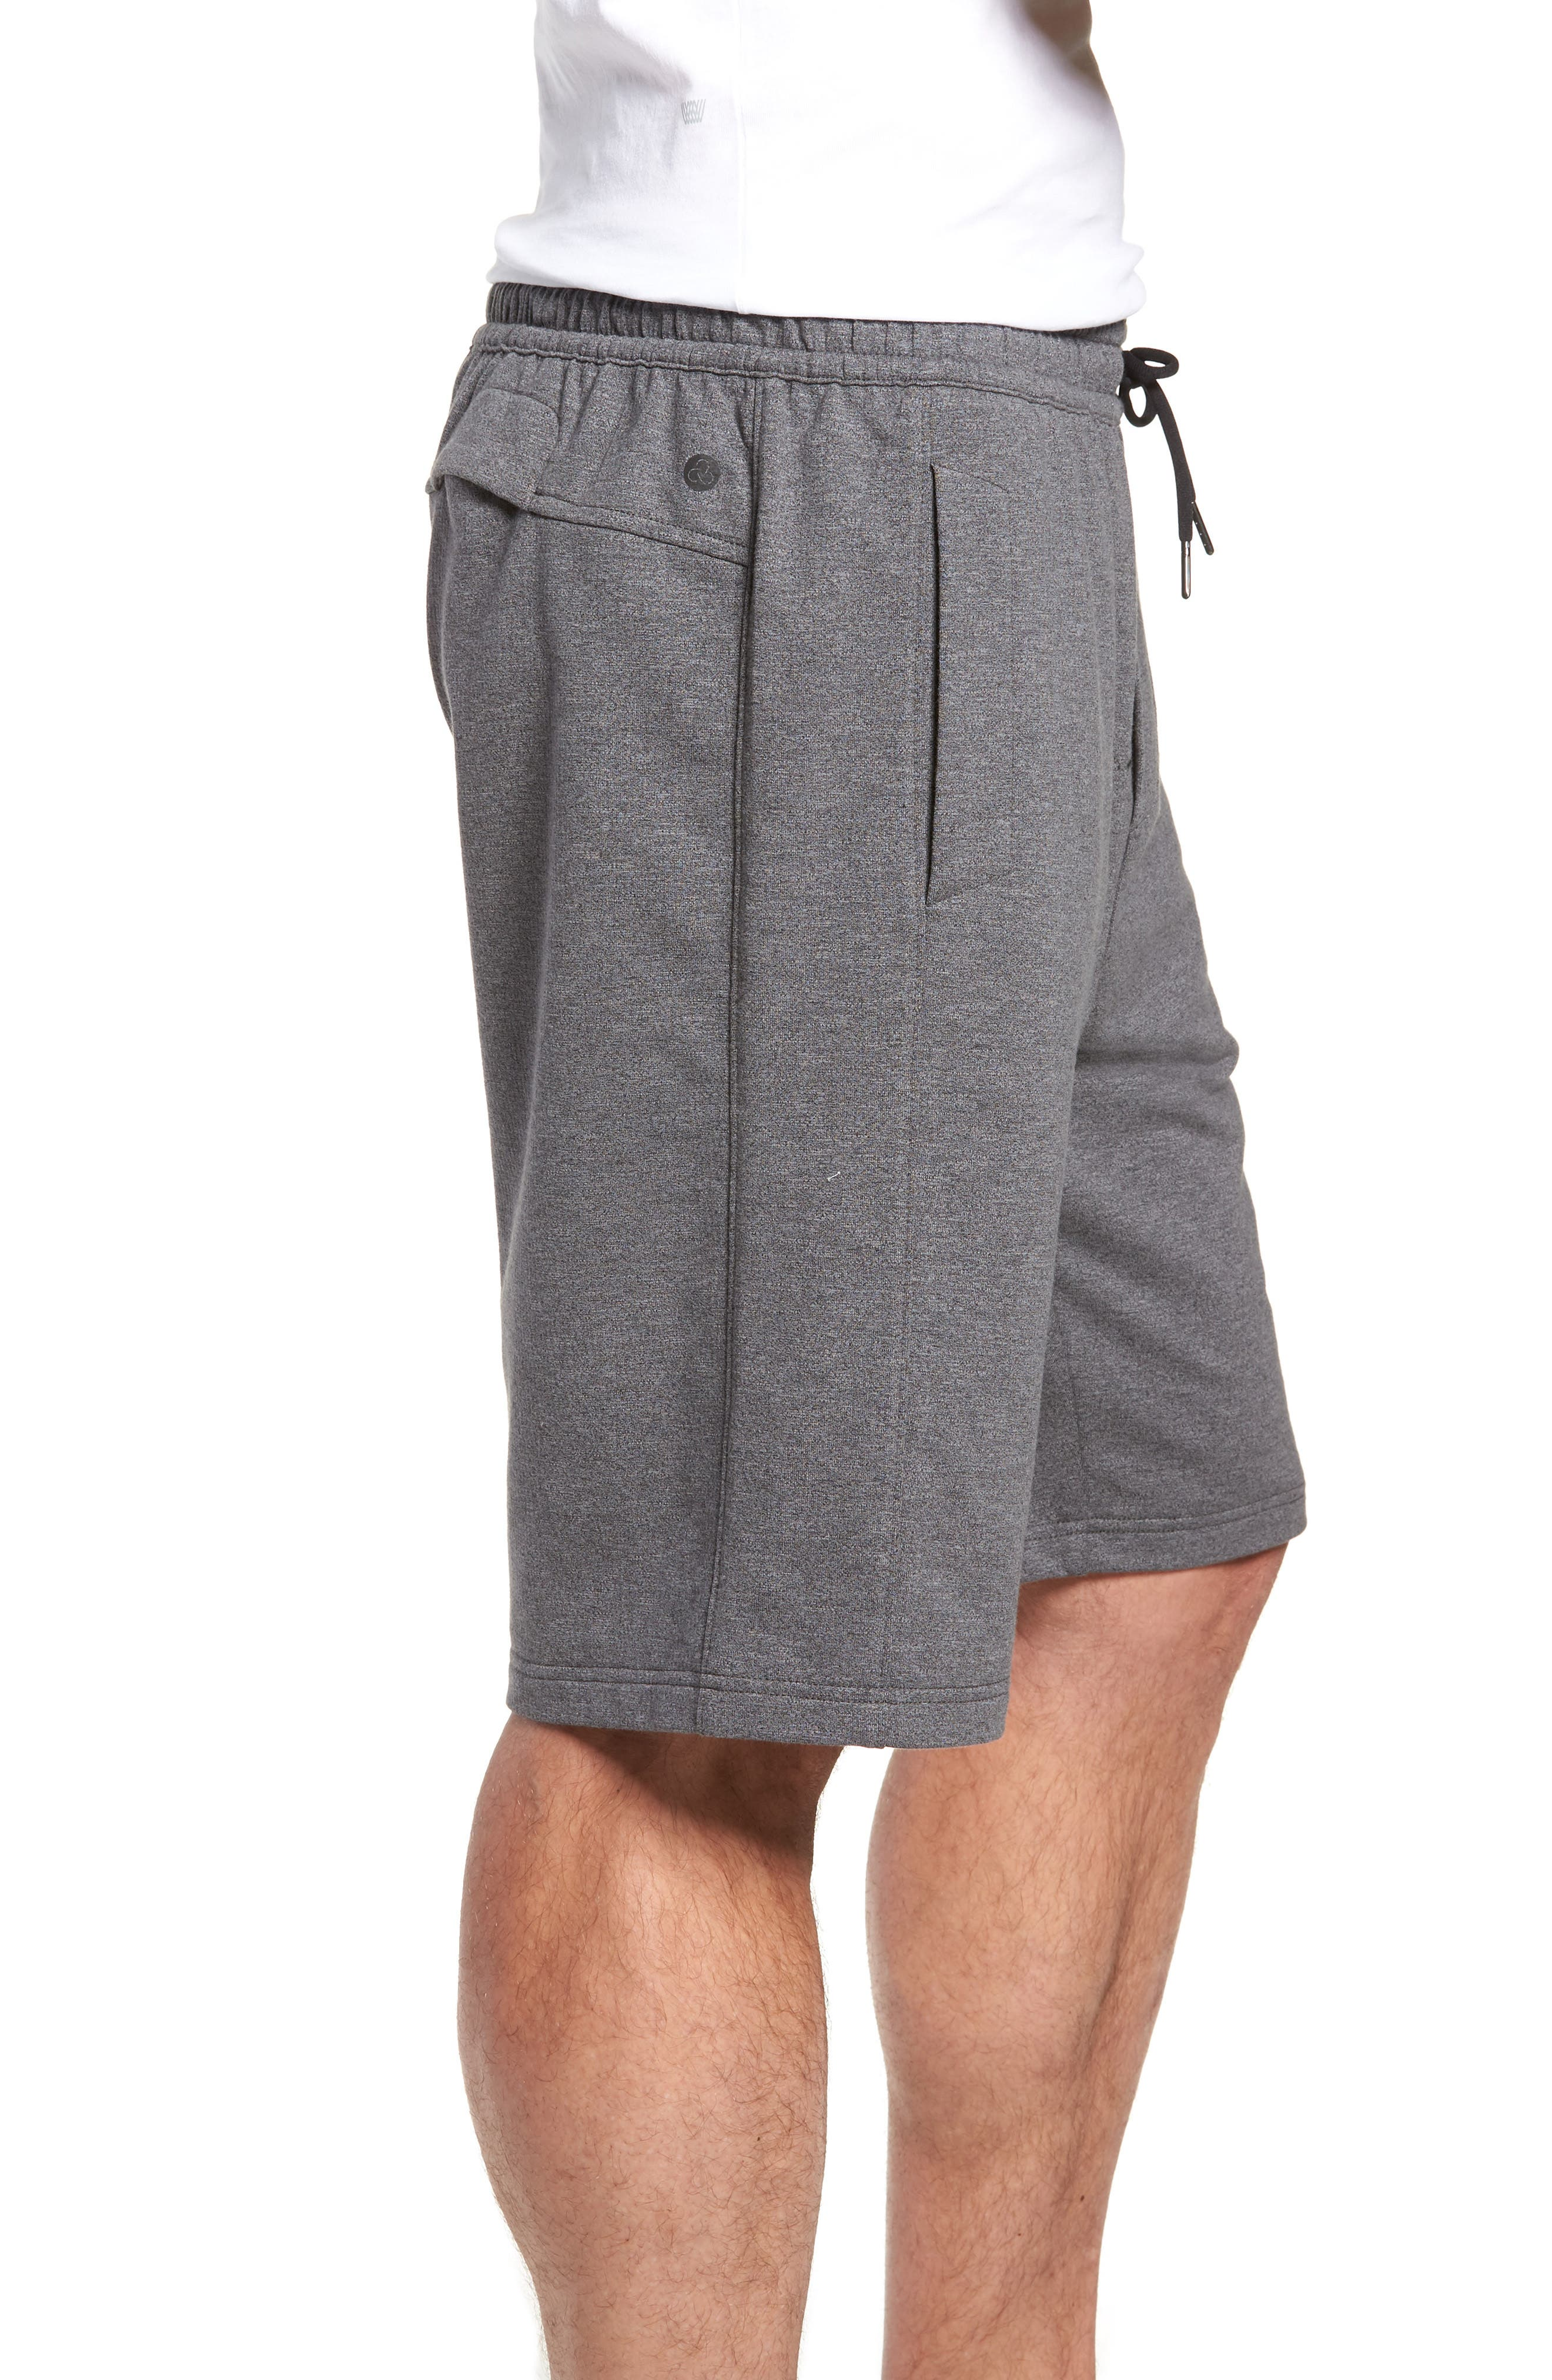 Arcanite Knit Shorts,                             Alternate thumbnail 3, color,                             021